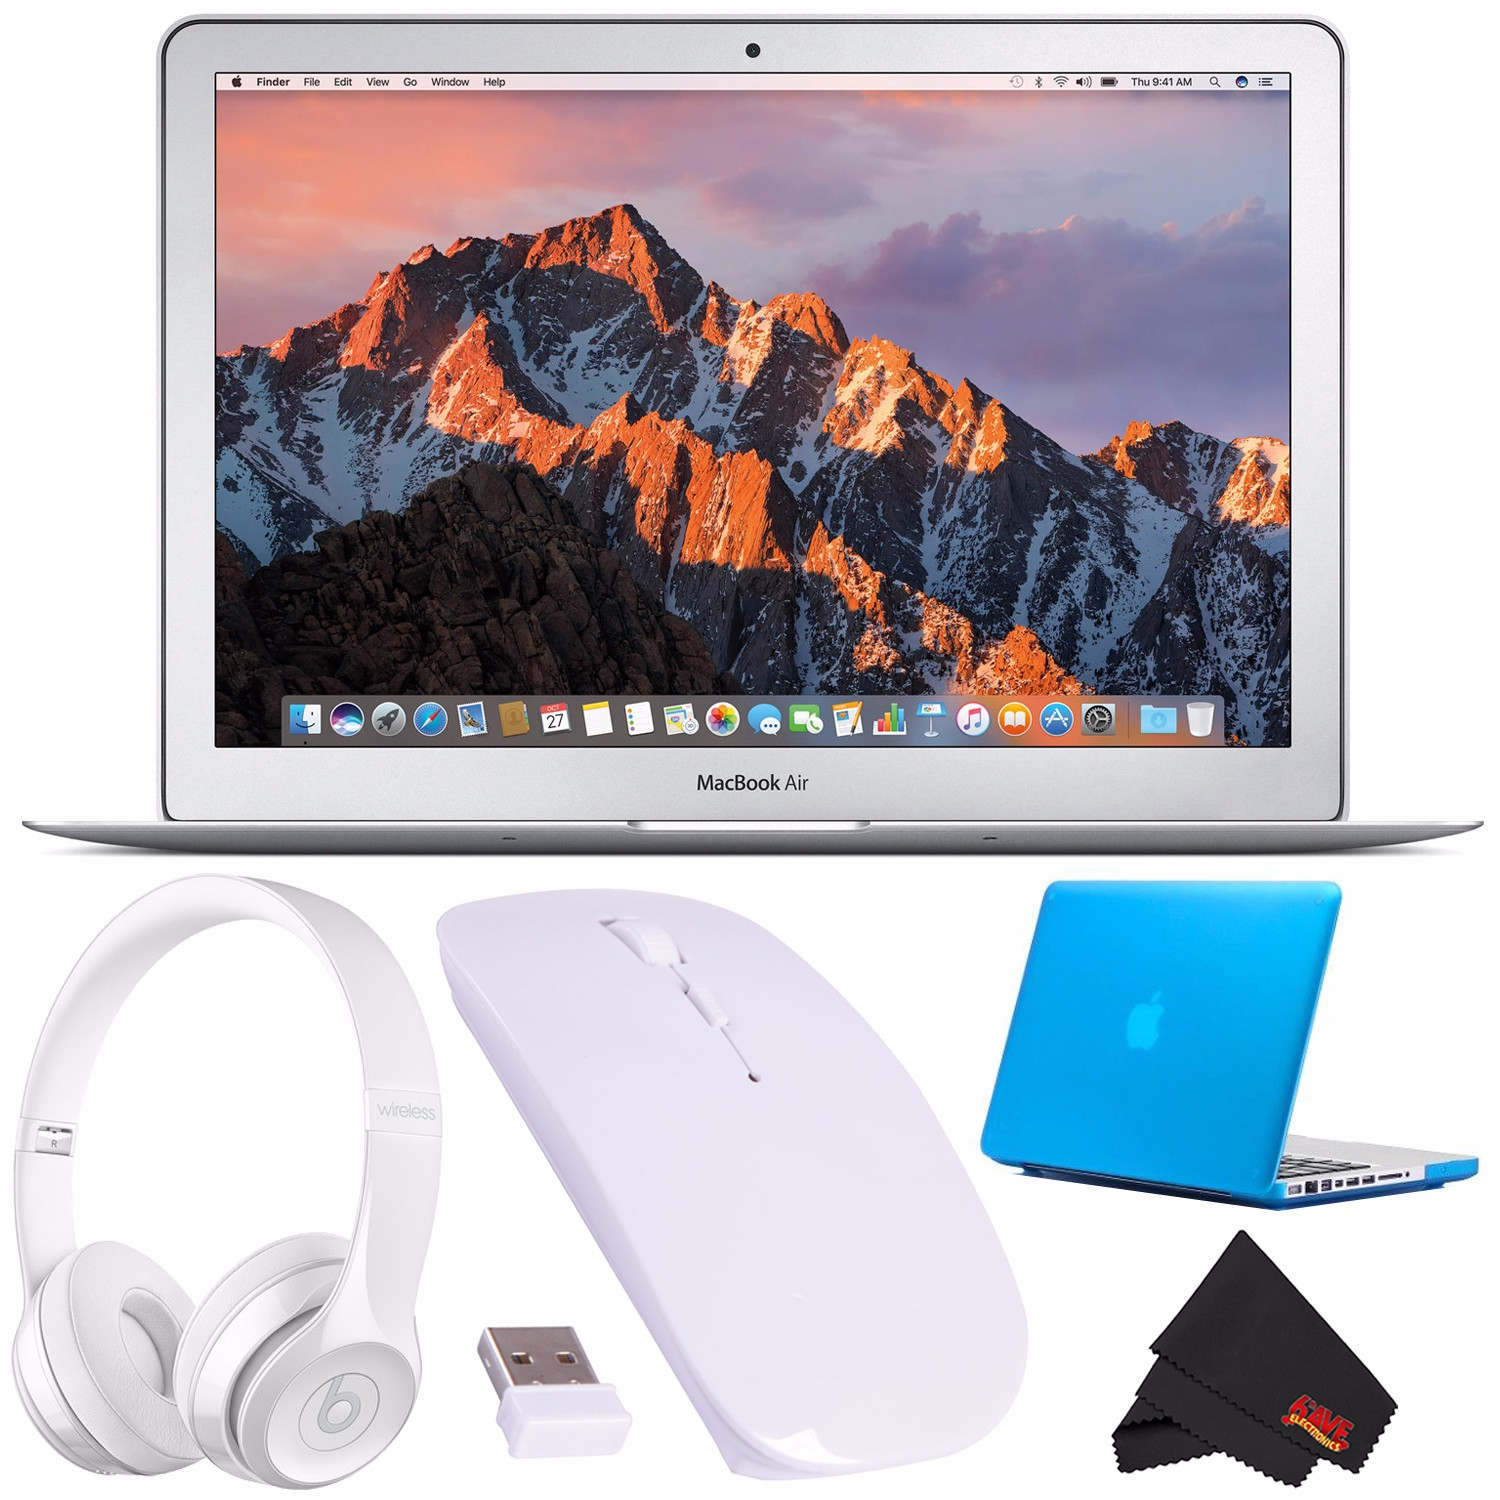 "Apple 13.3"" MacBook Air 256GB SSD + Beats by Dr. Dre Beats Solo3 Wireless On-Ear Headphones (Gloss Black) + Ultra-Slim 2.4 GHz Optical Wireless Mouse For Laptop PC Macbook (White) Bundle"